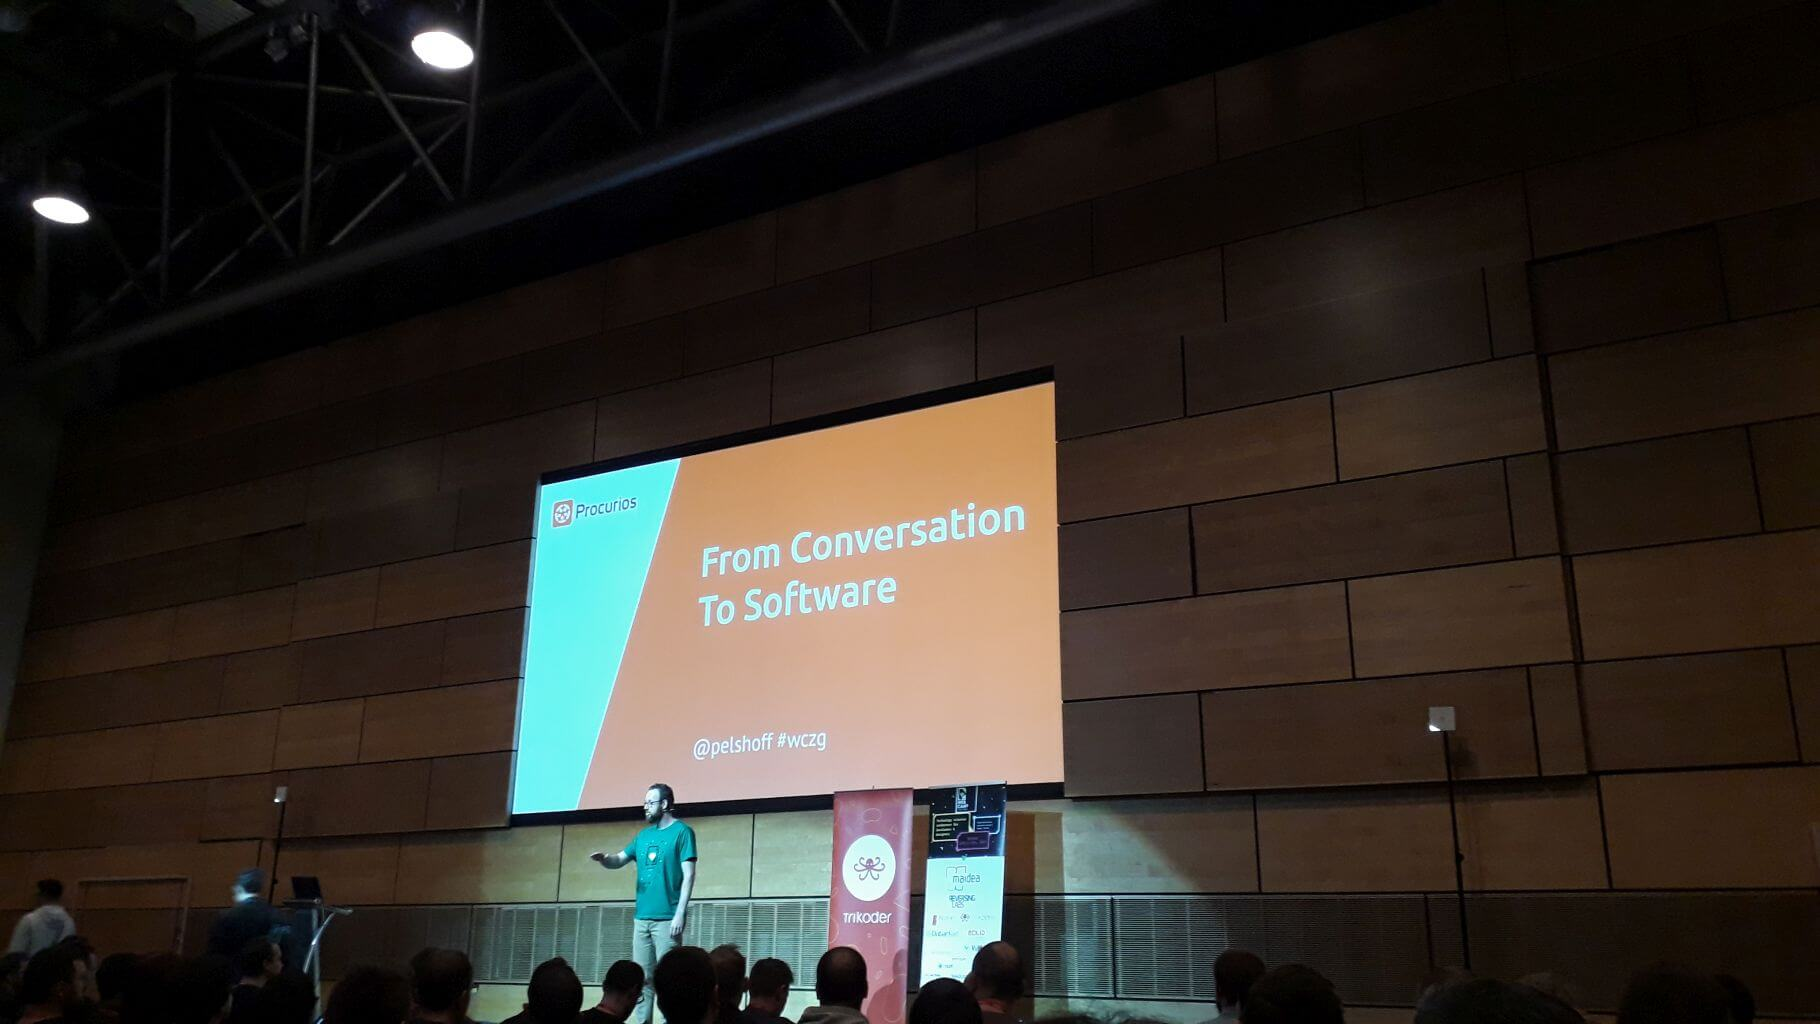 From Conversation to Software